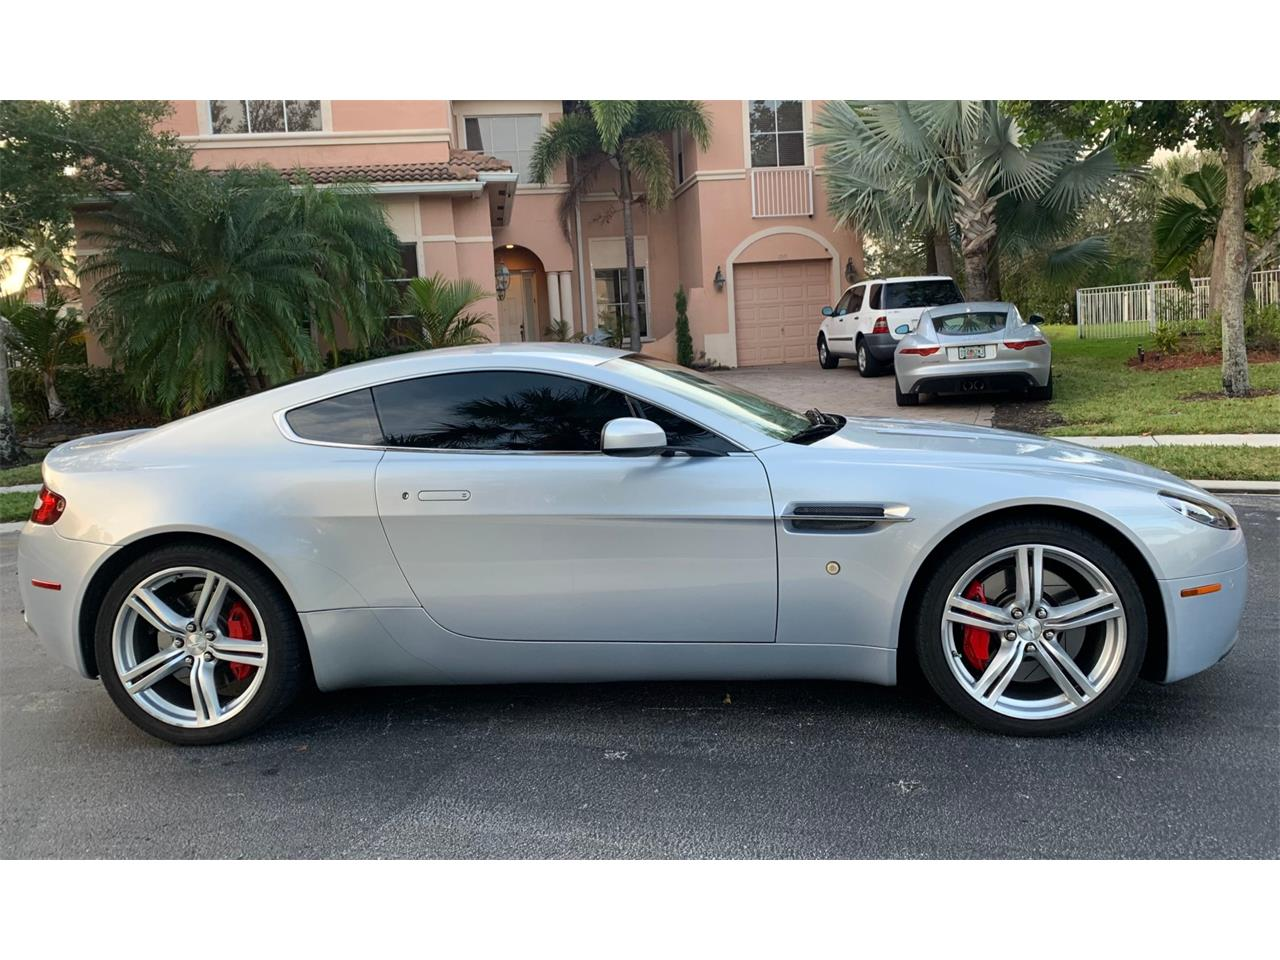 Large Picture of '09 Aston Martin Vantage Auction Vehicle Offered by Bring A Trailer - PWRX